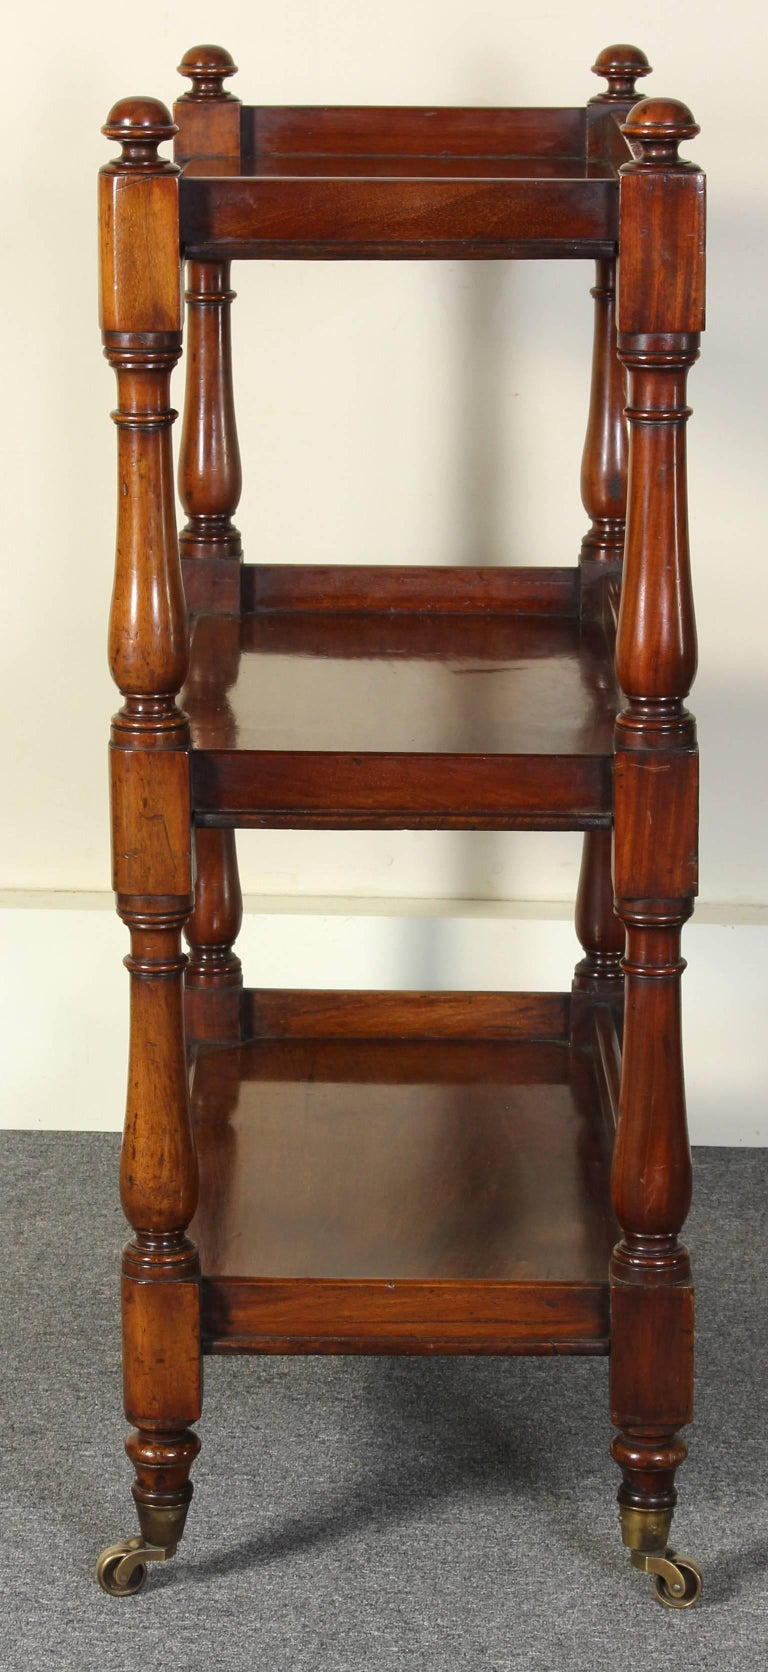 19th Century English Mahogany Trolly or Server In Excellent Condition For Sale In Kilmarnock, VA